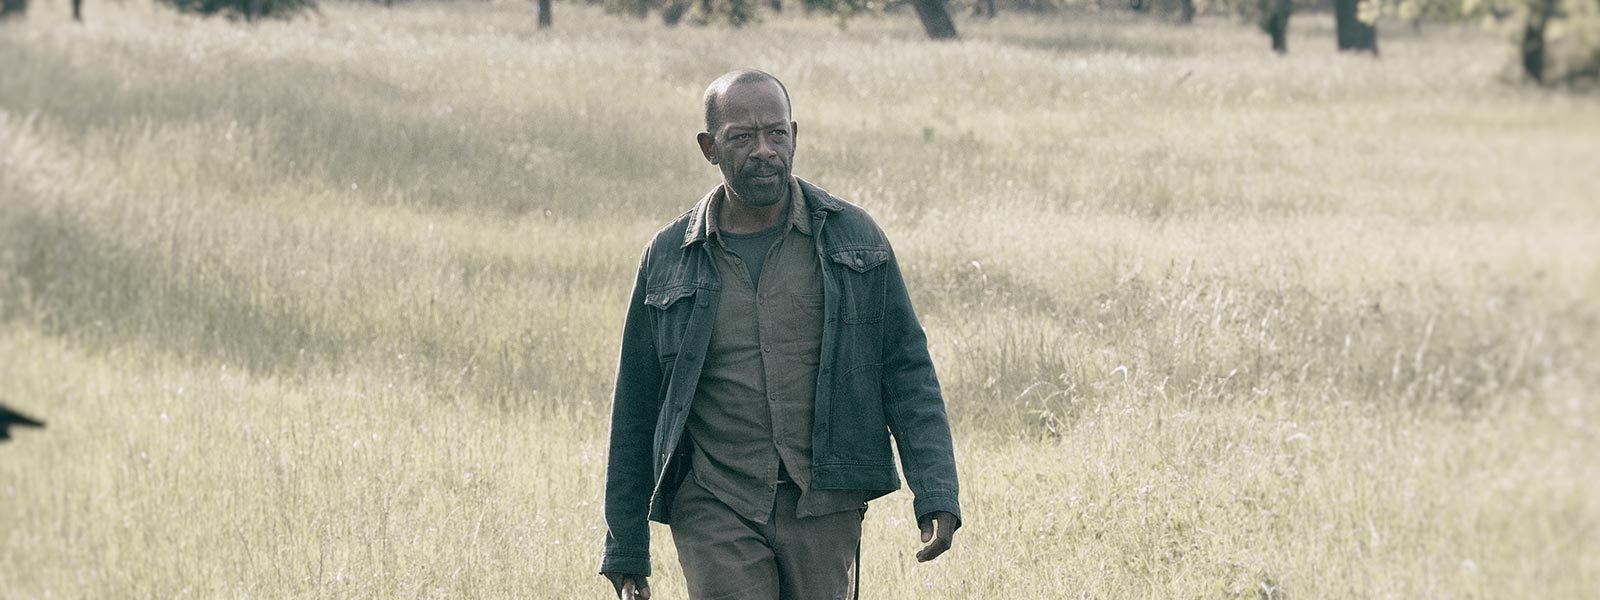 fear-the-walking-dead-episode-412-morgan-james-post-800×600